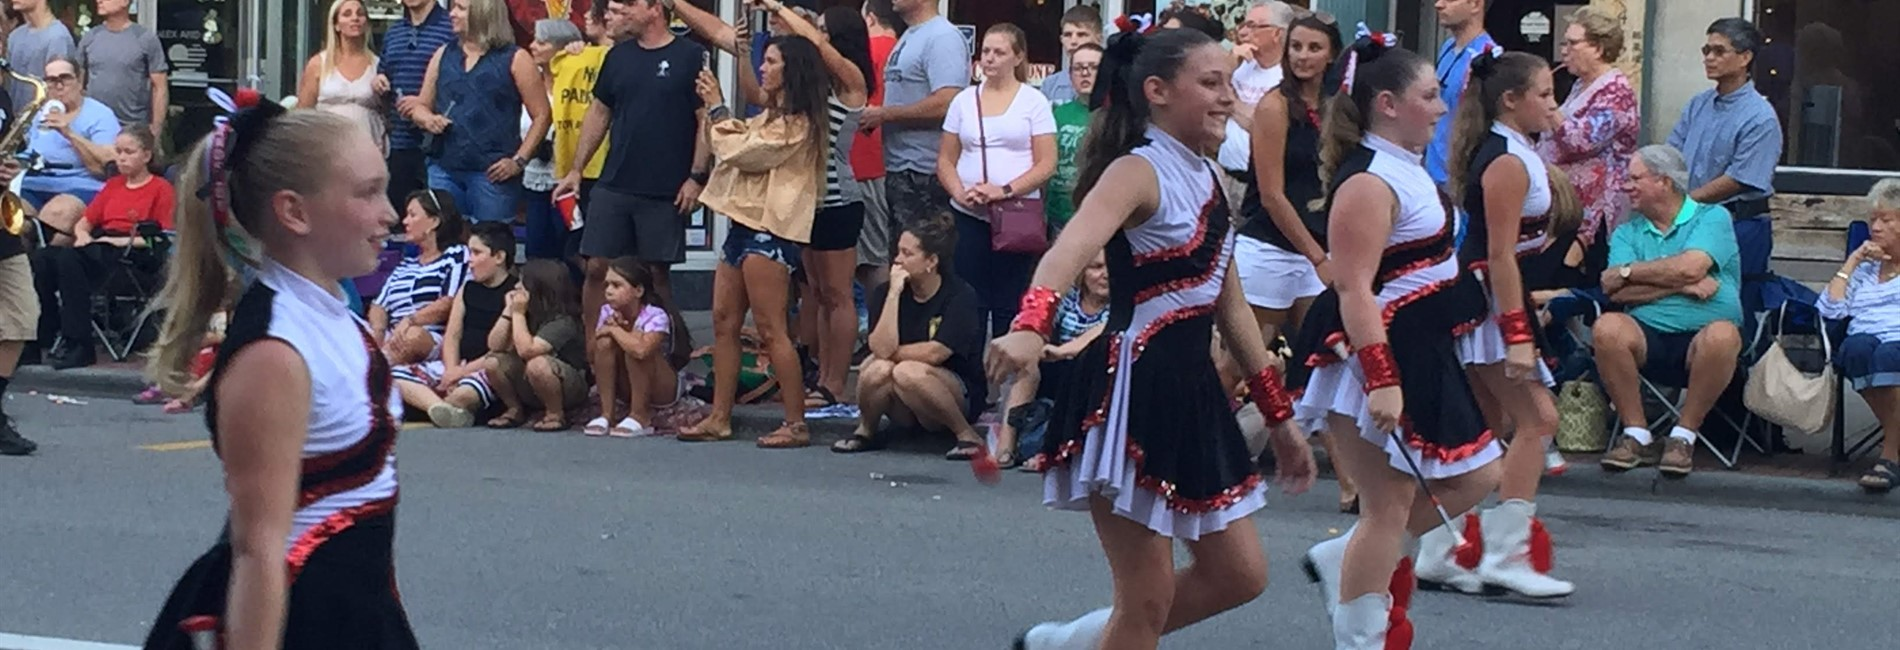 Westwood majorettes twirling in the Mon. County Fair Parade.